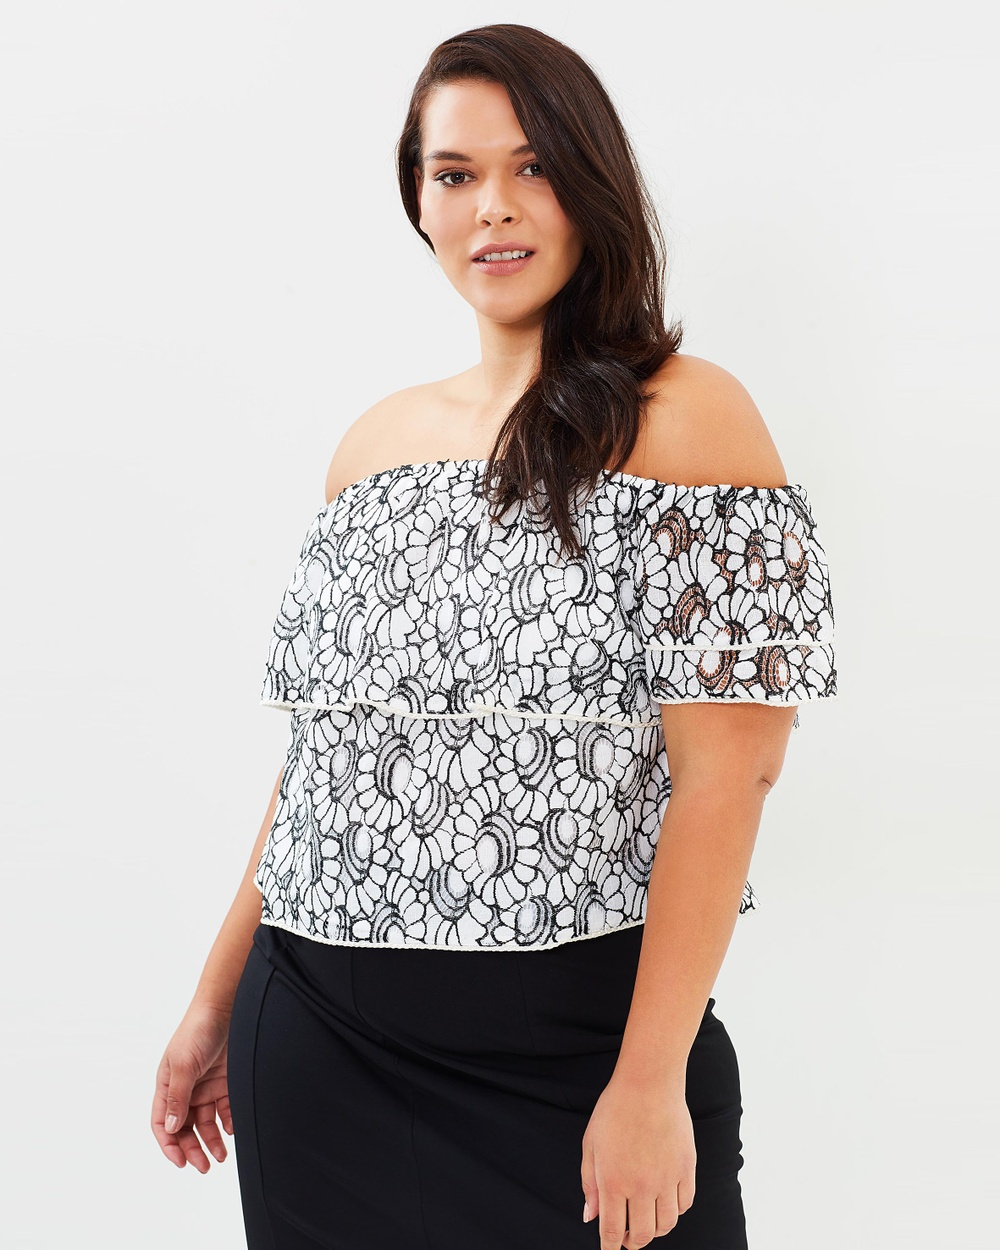 Atmos & Here Curvy ICONIC EXCLUSIVE Elise Off Shoulder Lace Top Tops Black & White ICONIC EXCLUSIVE Elise Off-Shoulder Lace Top